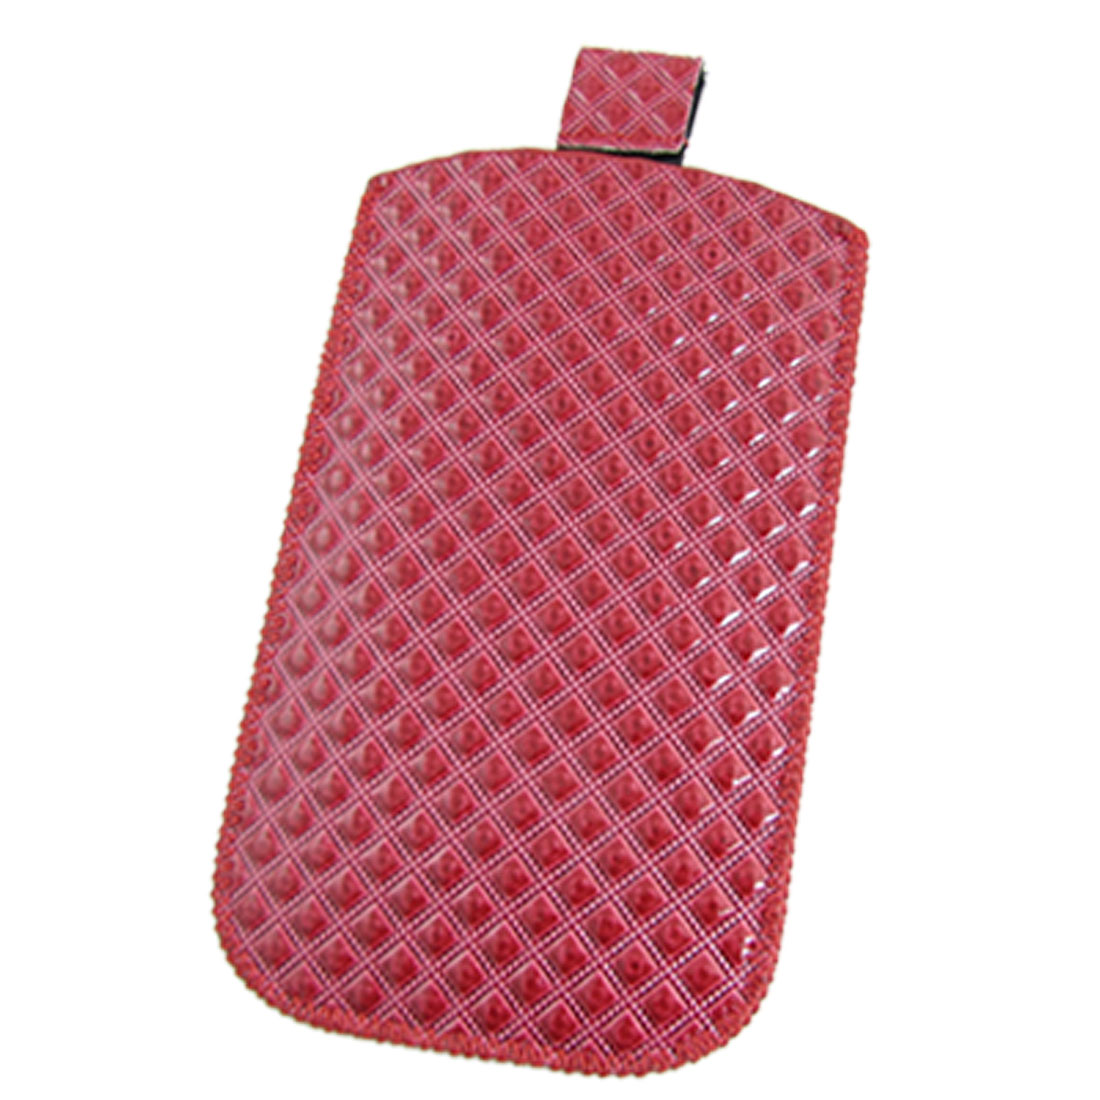 Red Faux Leather Checker Textured Pull Up Pouch for iPhone 4 4G